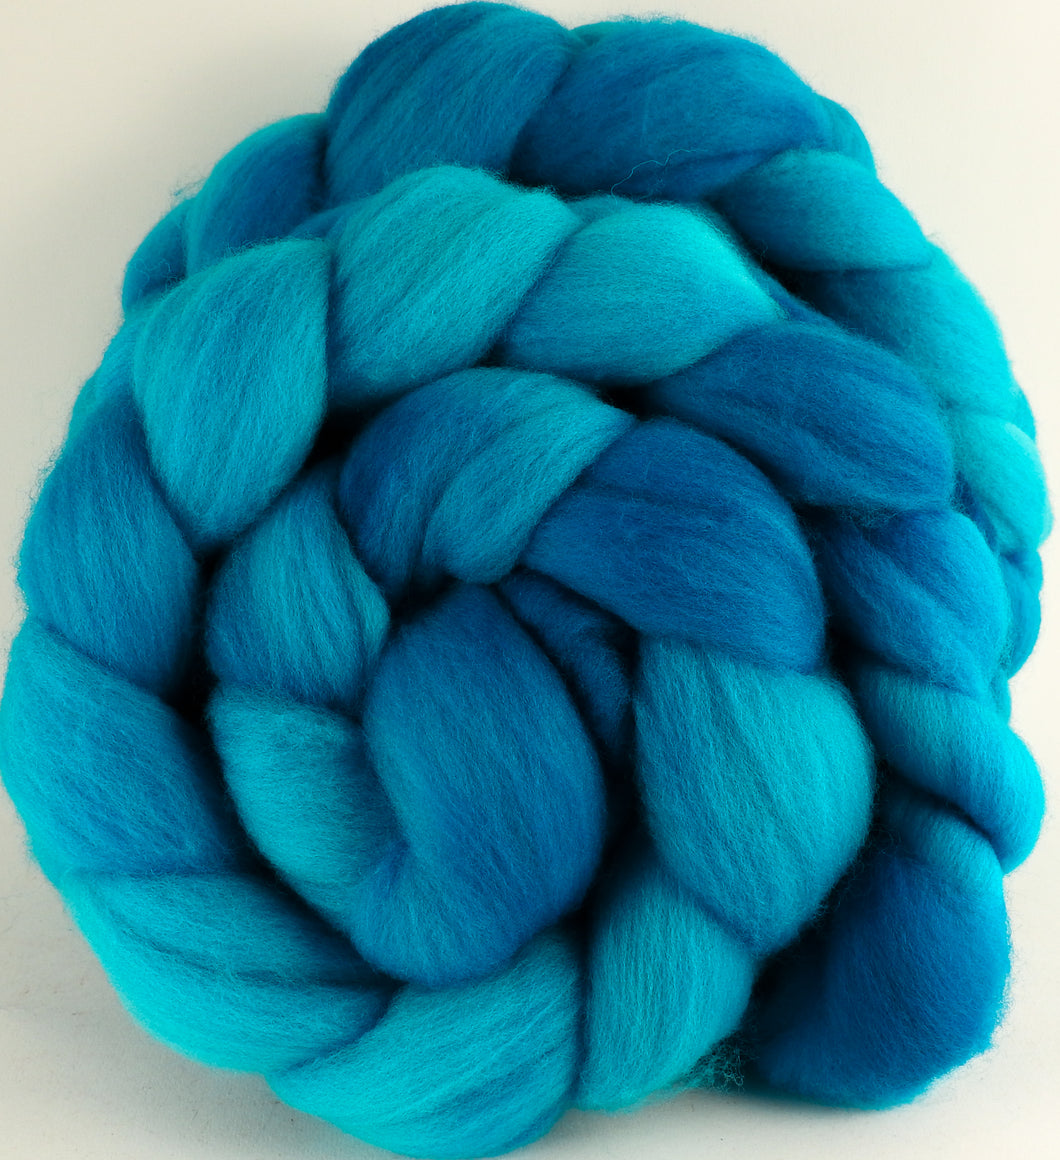 Hand dyed top for spinning - Jersey (5.2) - Organic Polwarth